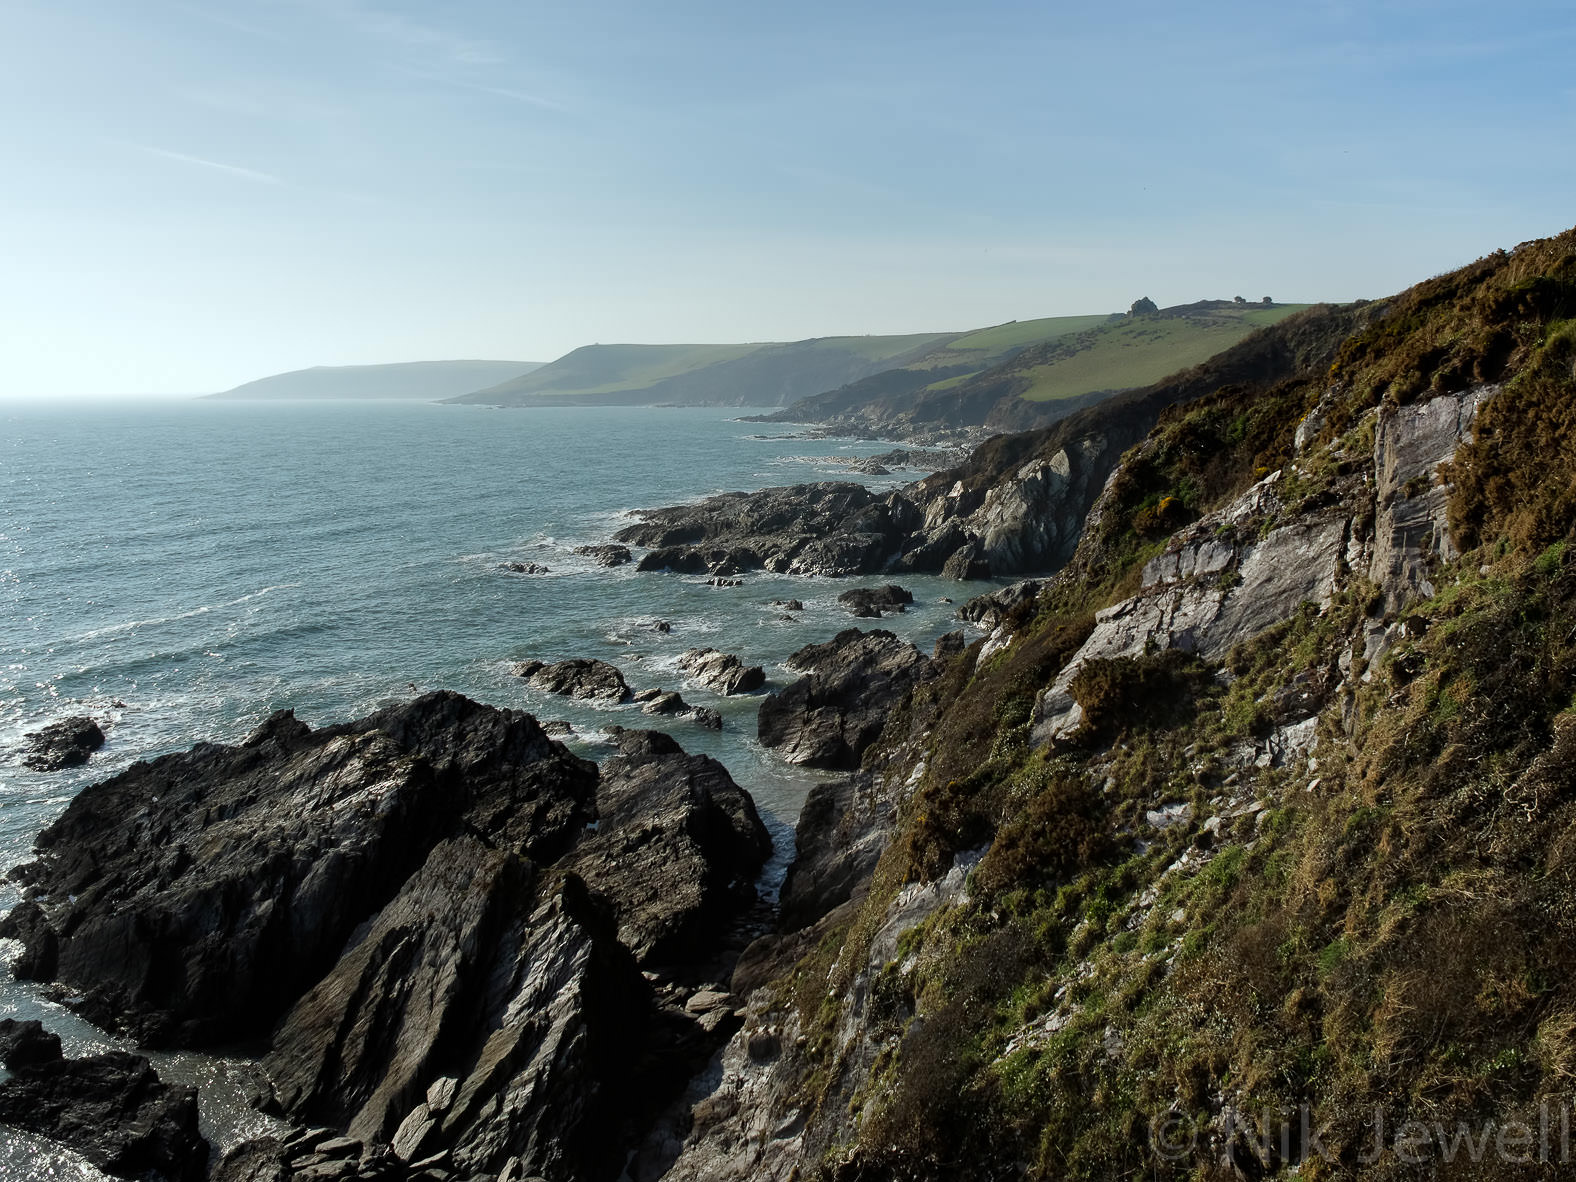 St Anchorite's Rock from above Butcher's Cove on the South West Coast Path in the South Hams, Devon